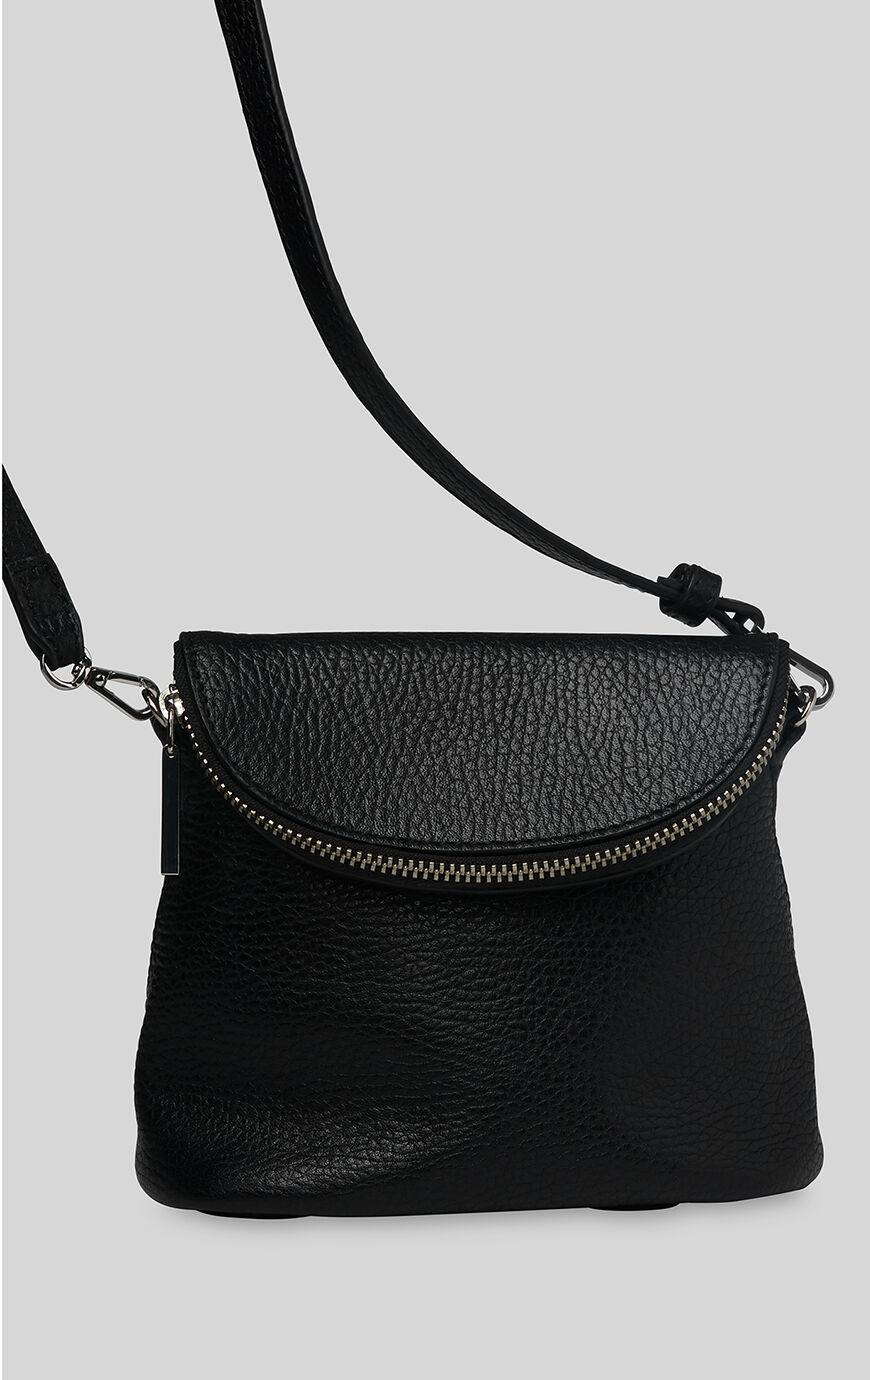 39af3ed5fc6 Whistles Victoria Mini Crossbody Bag in Black - Lyst